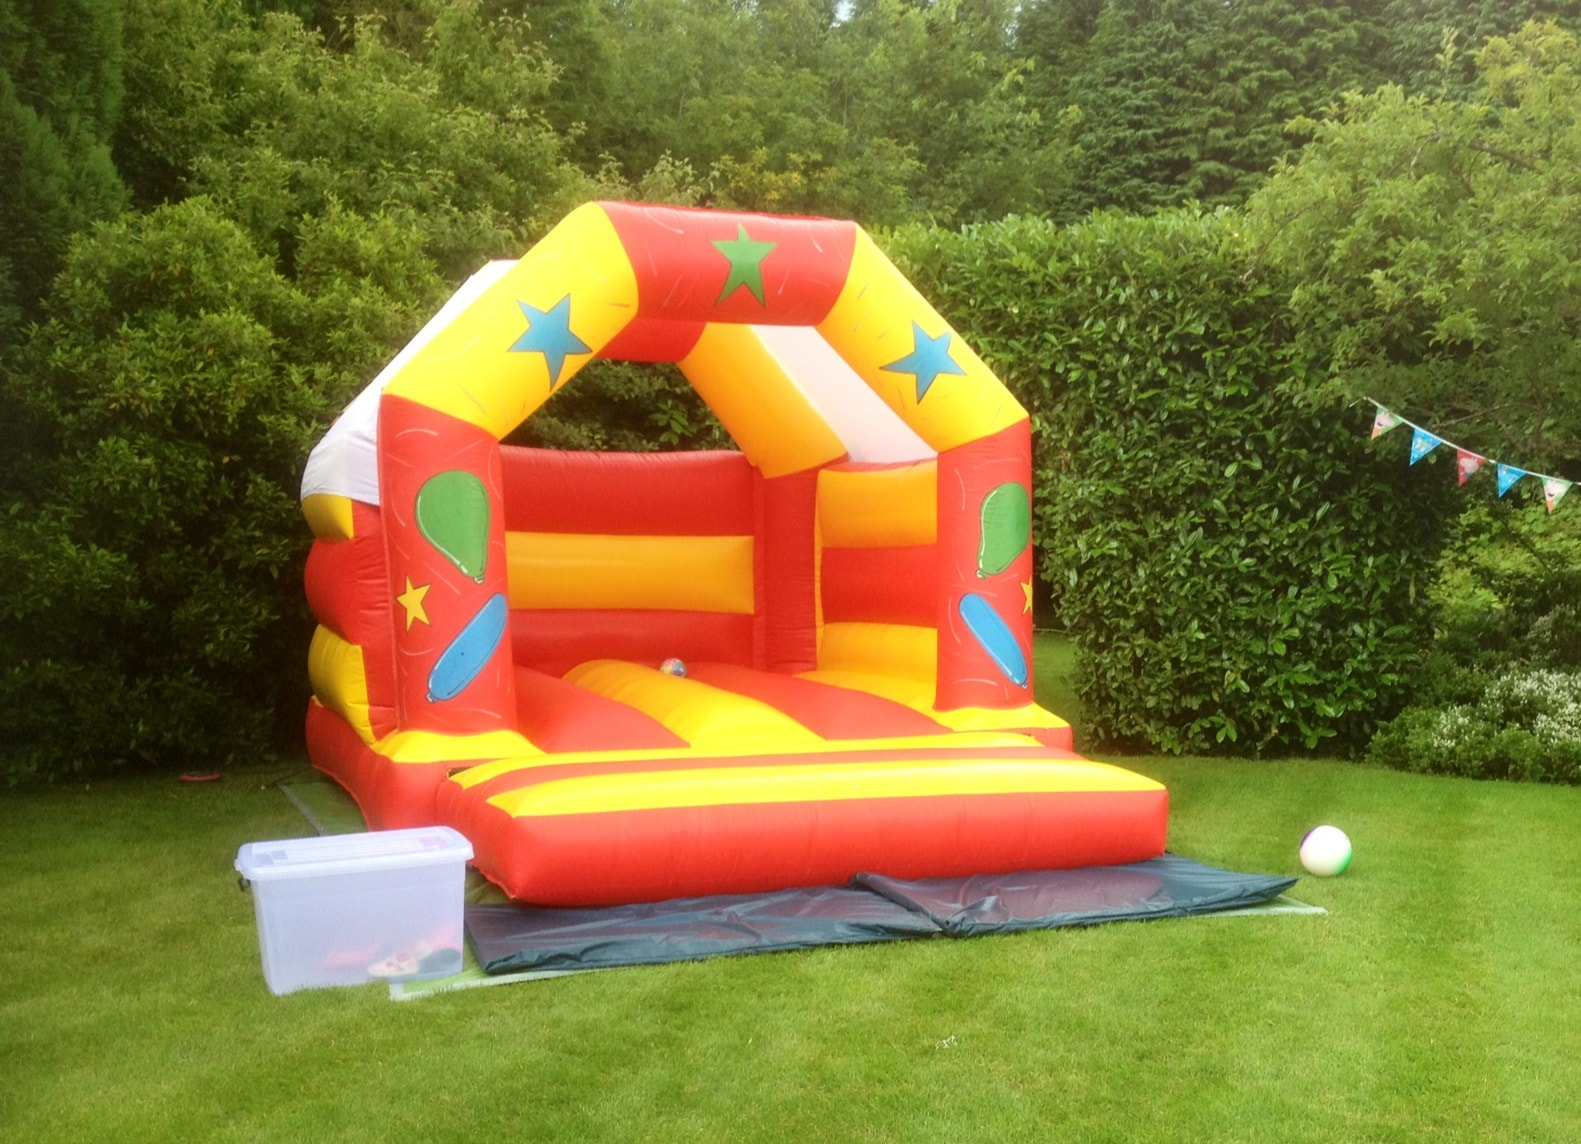 Soft Play & Bouncy Castle Hire   Ideal for children's birthday parties, weddings, christenings, NCT gatherings or any event where you want to entertain little ones